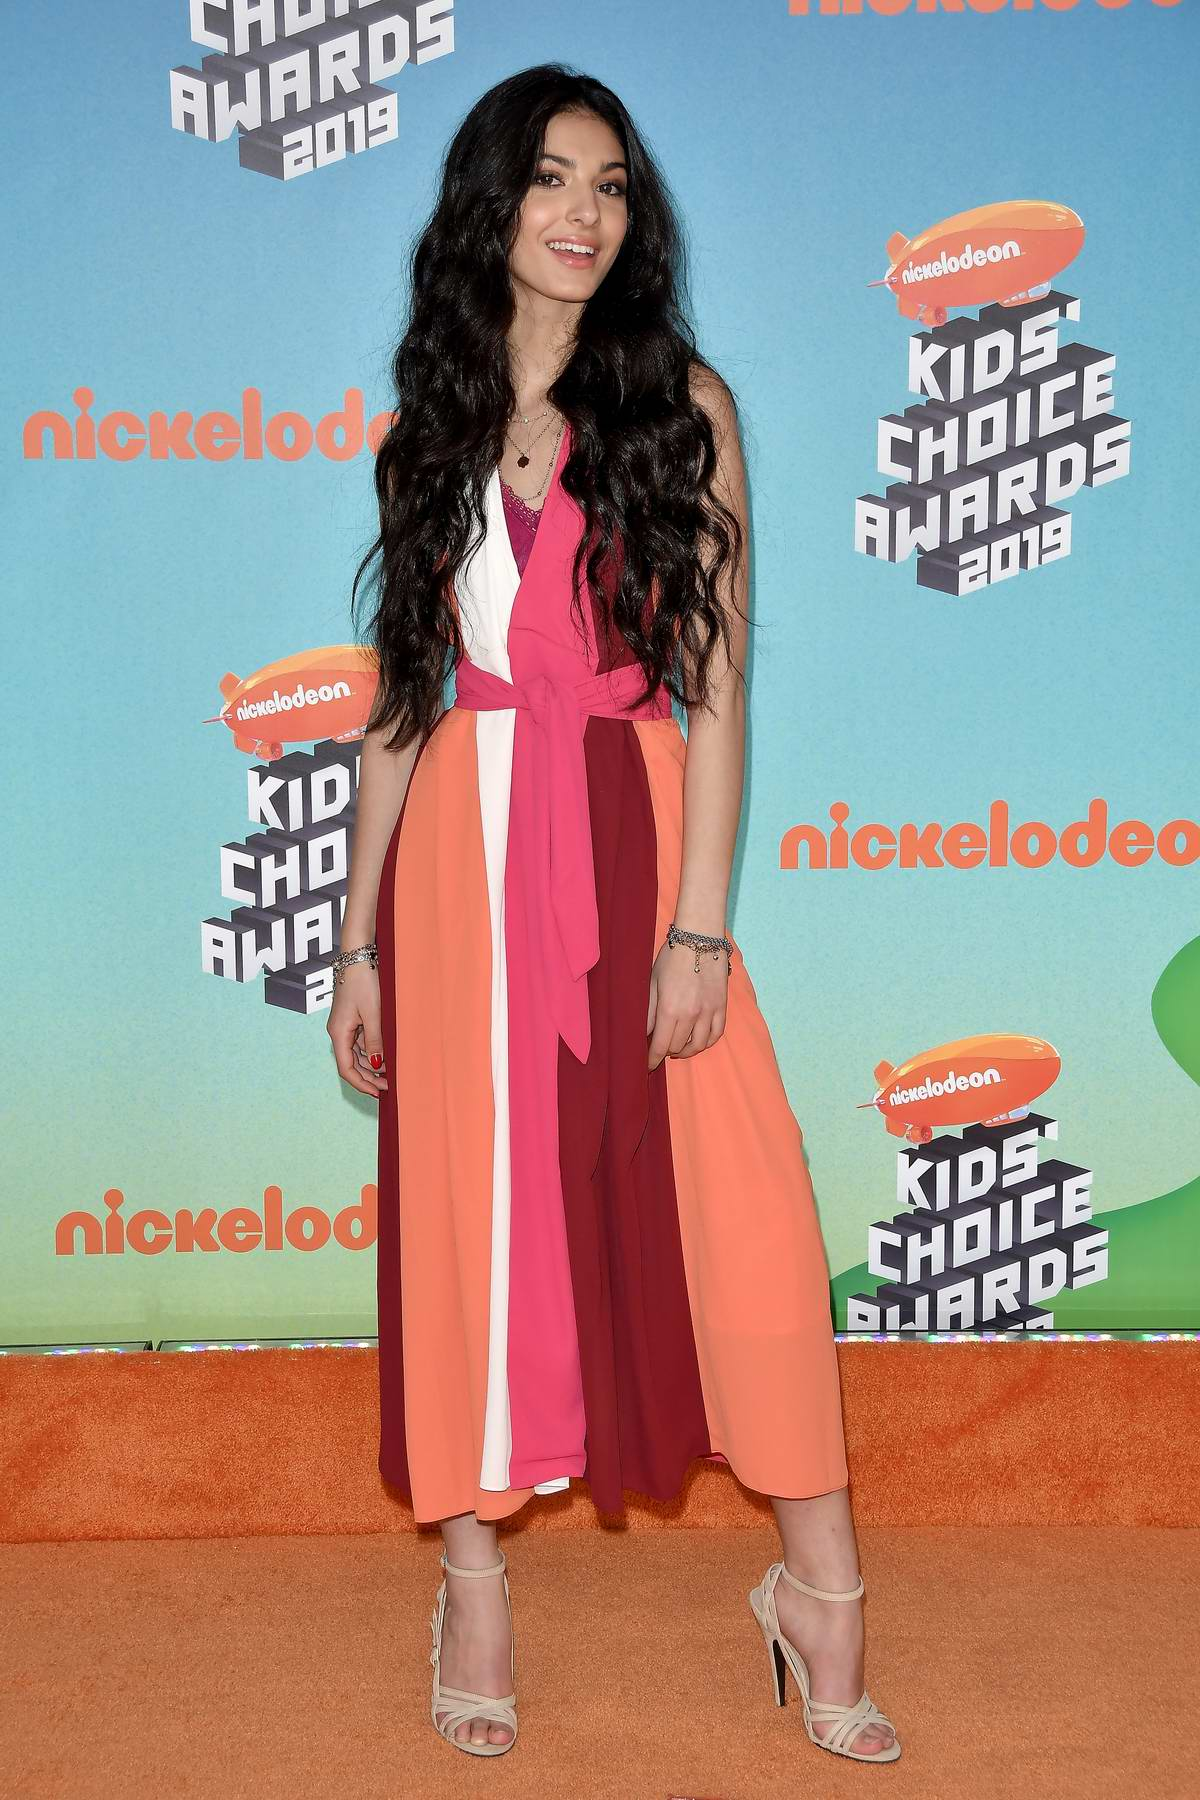 Elisa Maino attends the Nickelodeon's 2019 Kids' Choice Awards at Galen Center in Los Angeles